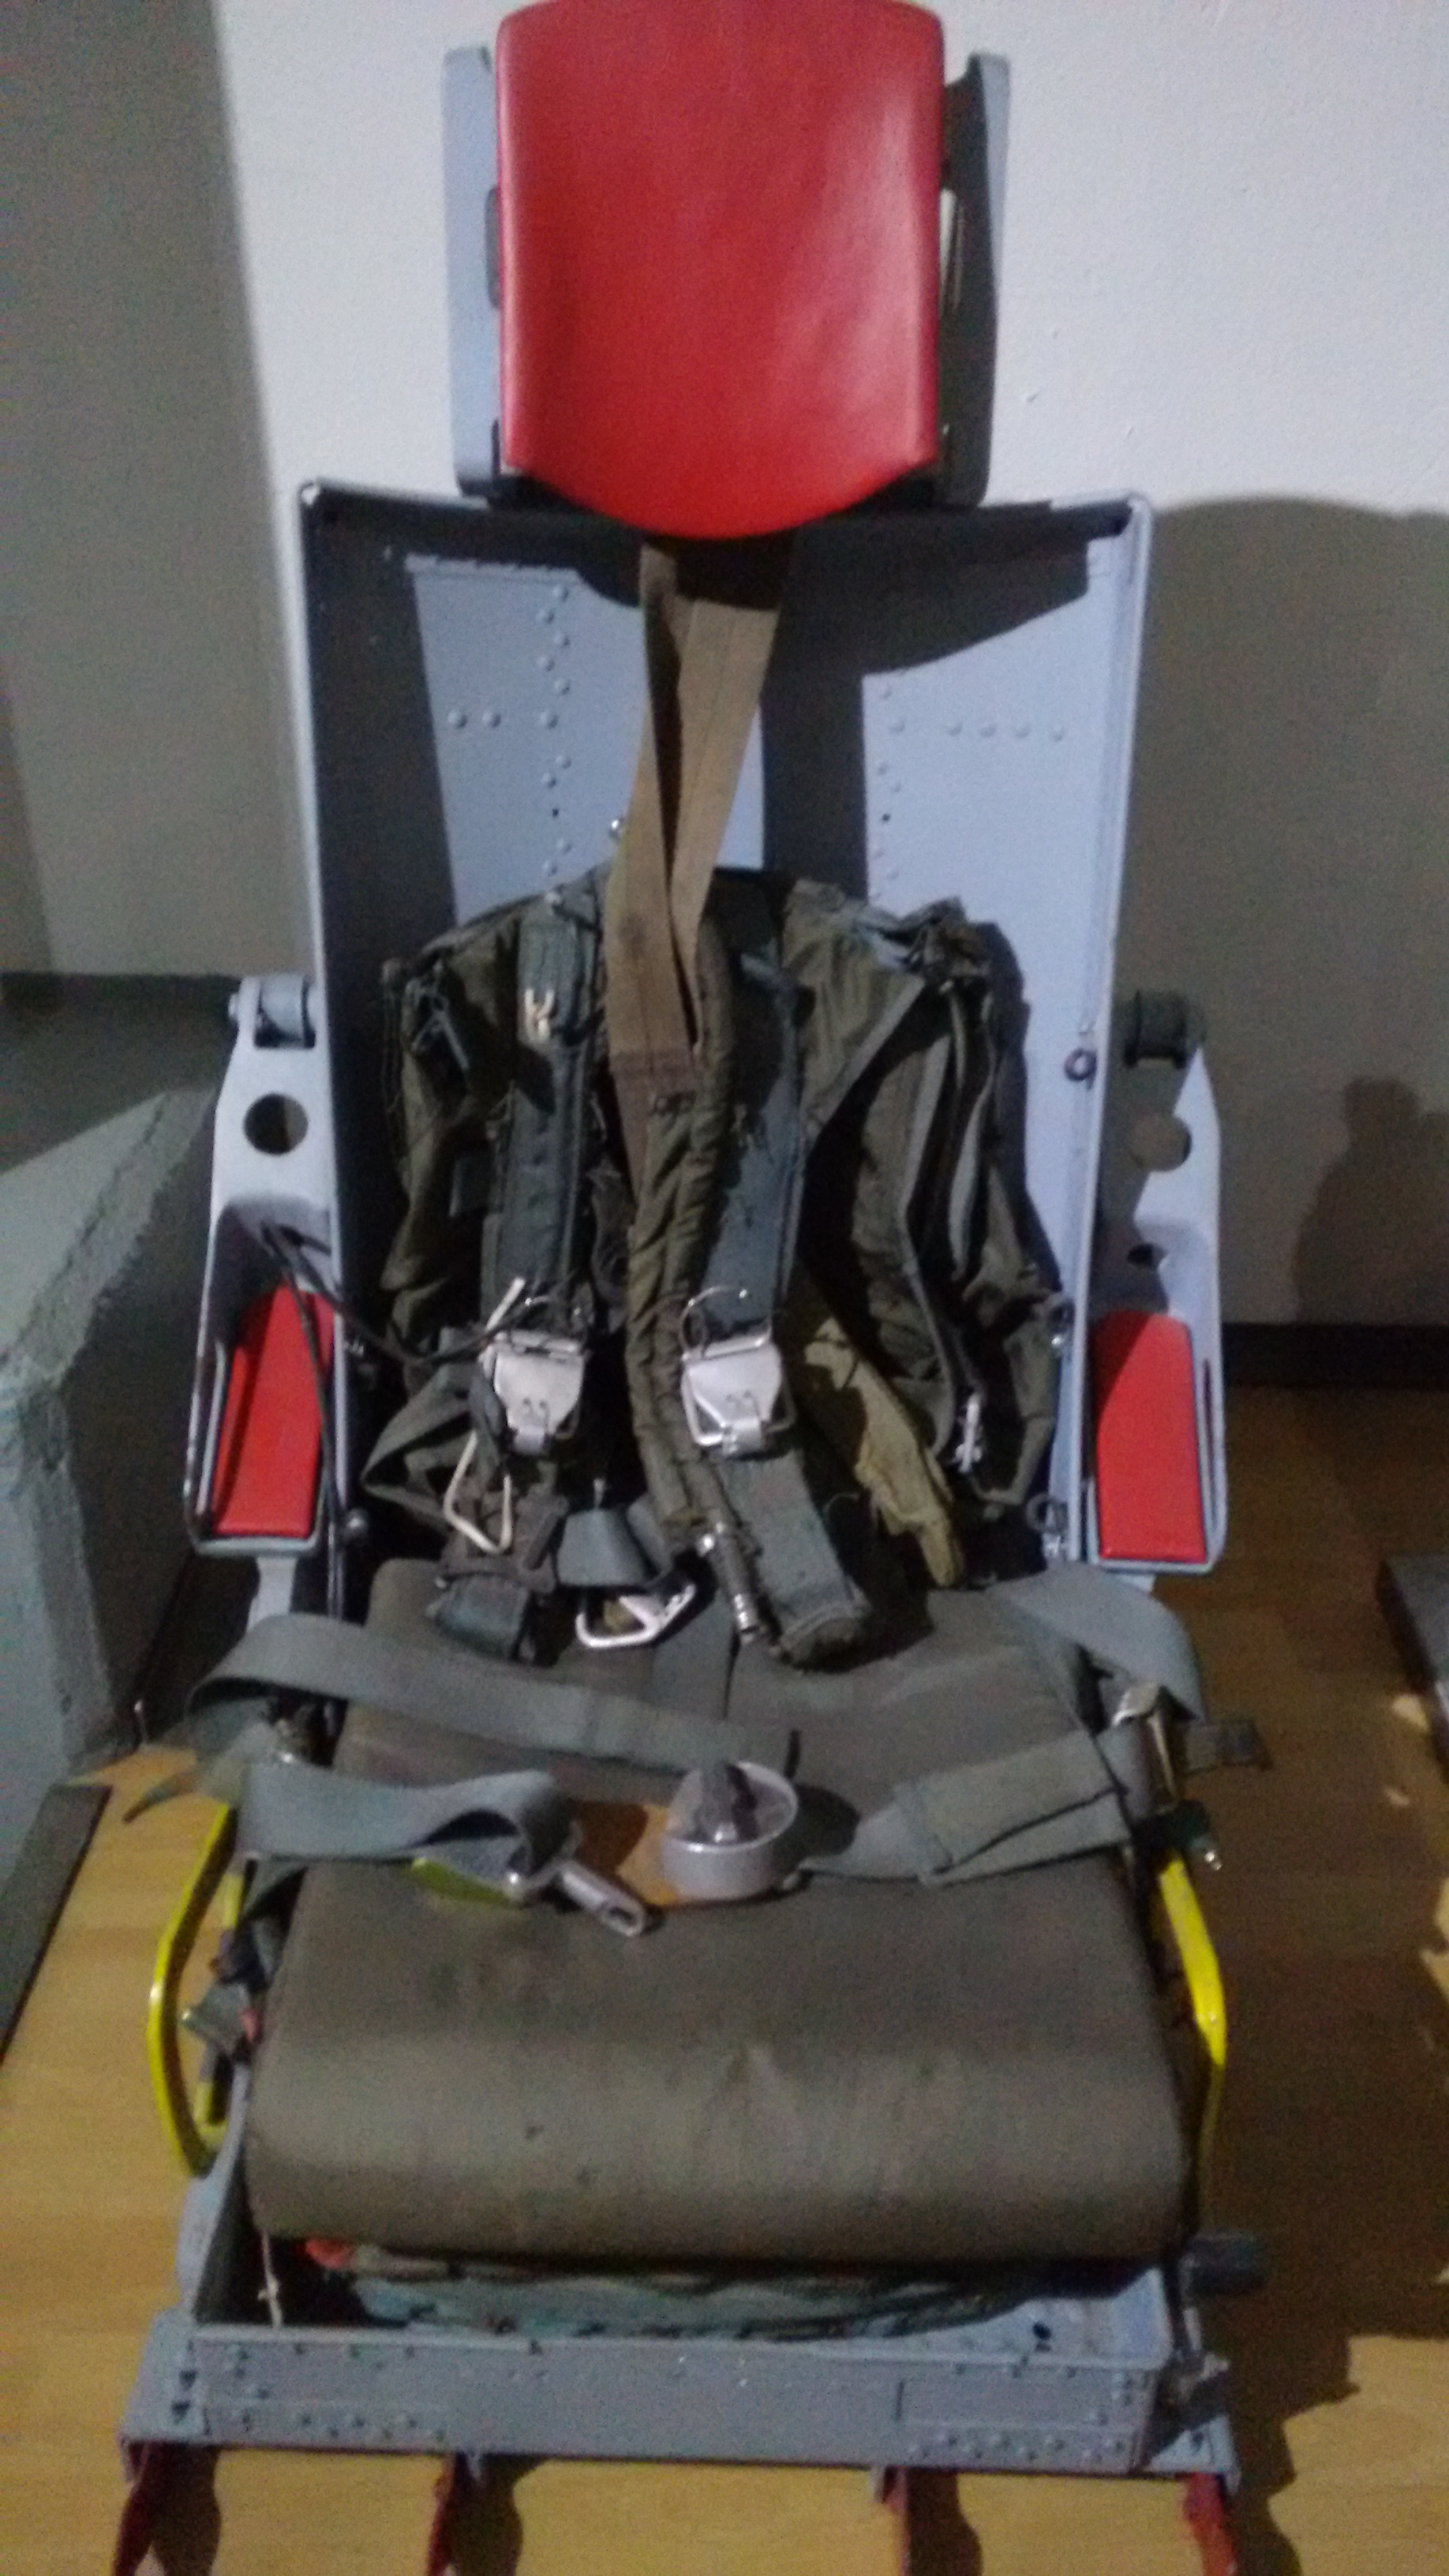 ejection seat office chair sheepskin covers nz wt live image by dankmemelord